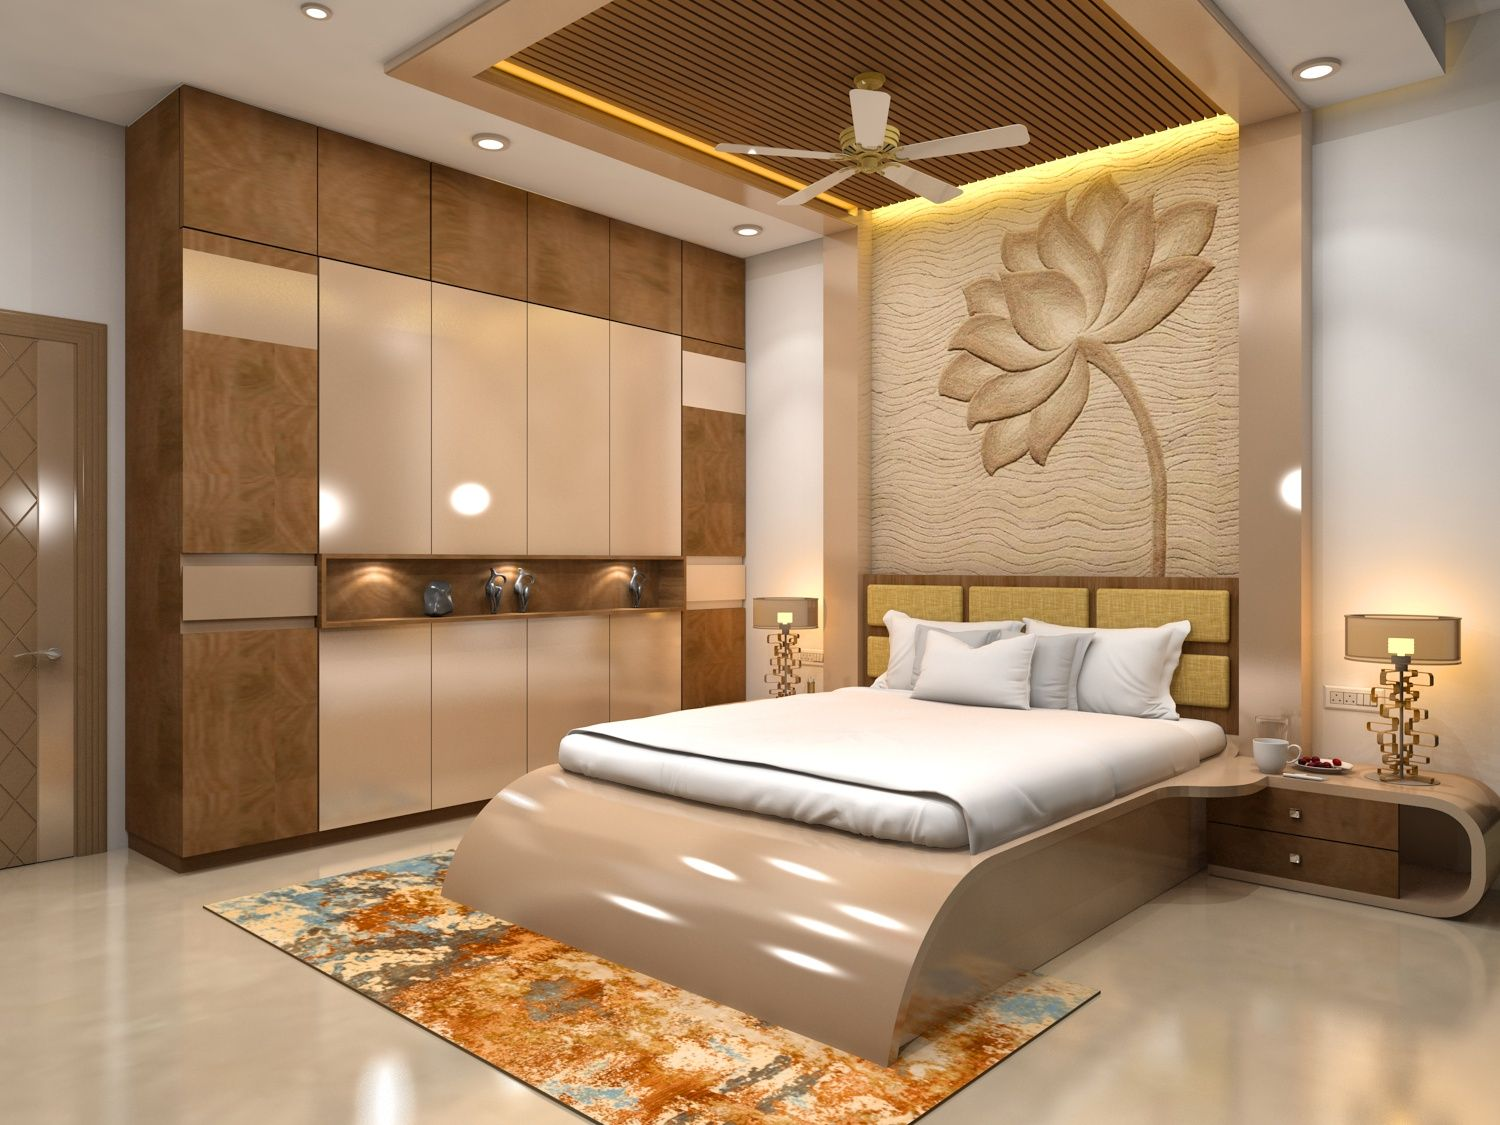 Pin By Dhanu Max Studio On Celling Design Modern Bedroom Interior Bedroom Furniture Design Bedroom Bed Design